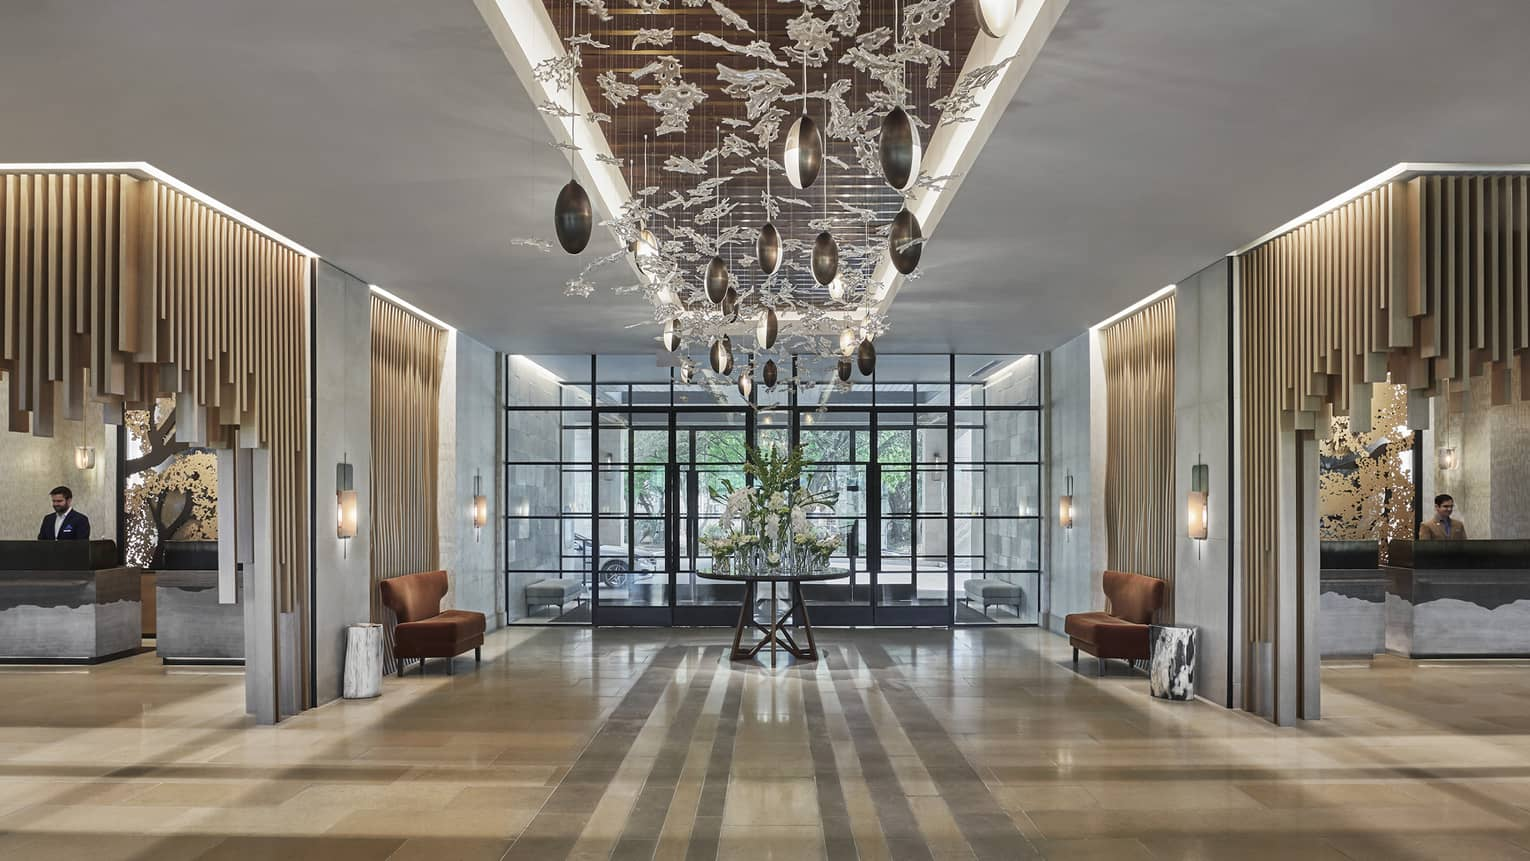 Delicate glass and rounded lights adorn the ceiling of a well-lit lobby